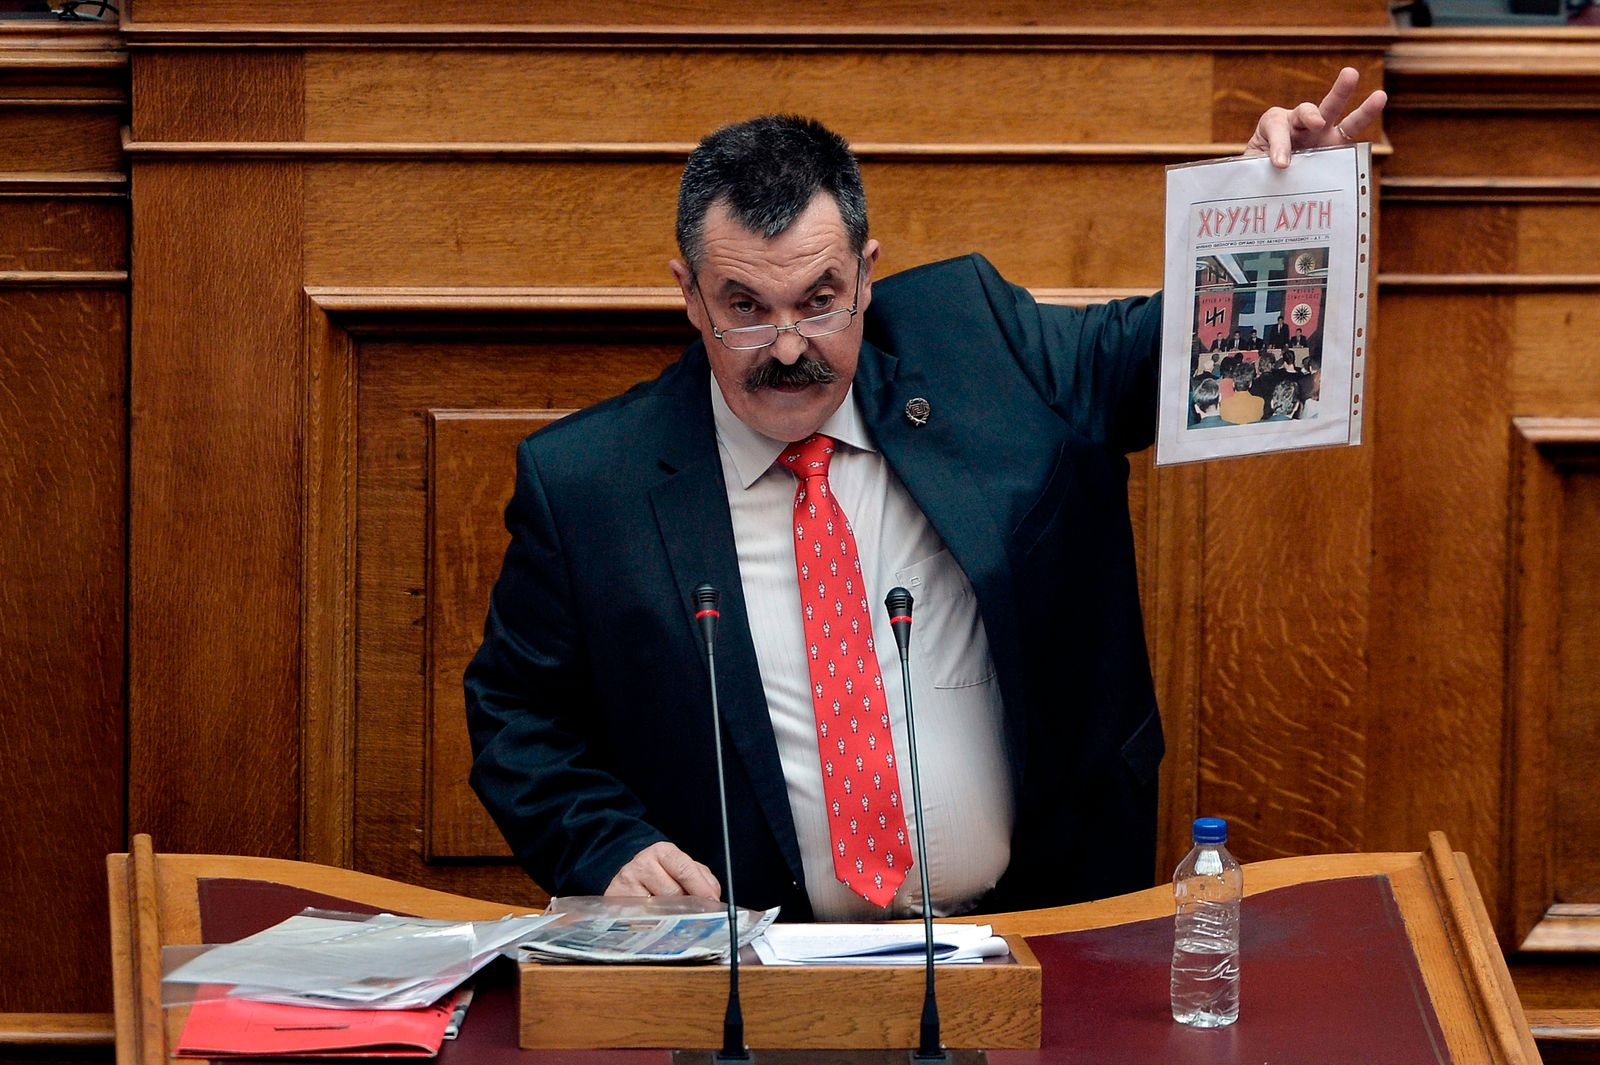 FILES-GREECE-FAR RIGHT-GOLDENDAWN-JUSTICE-TRIAL